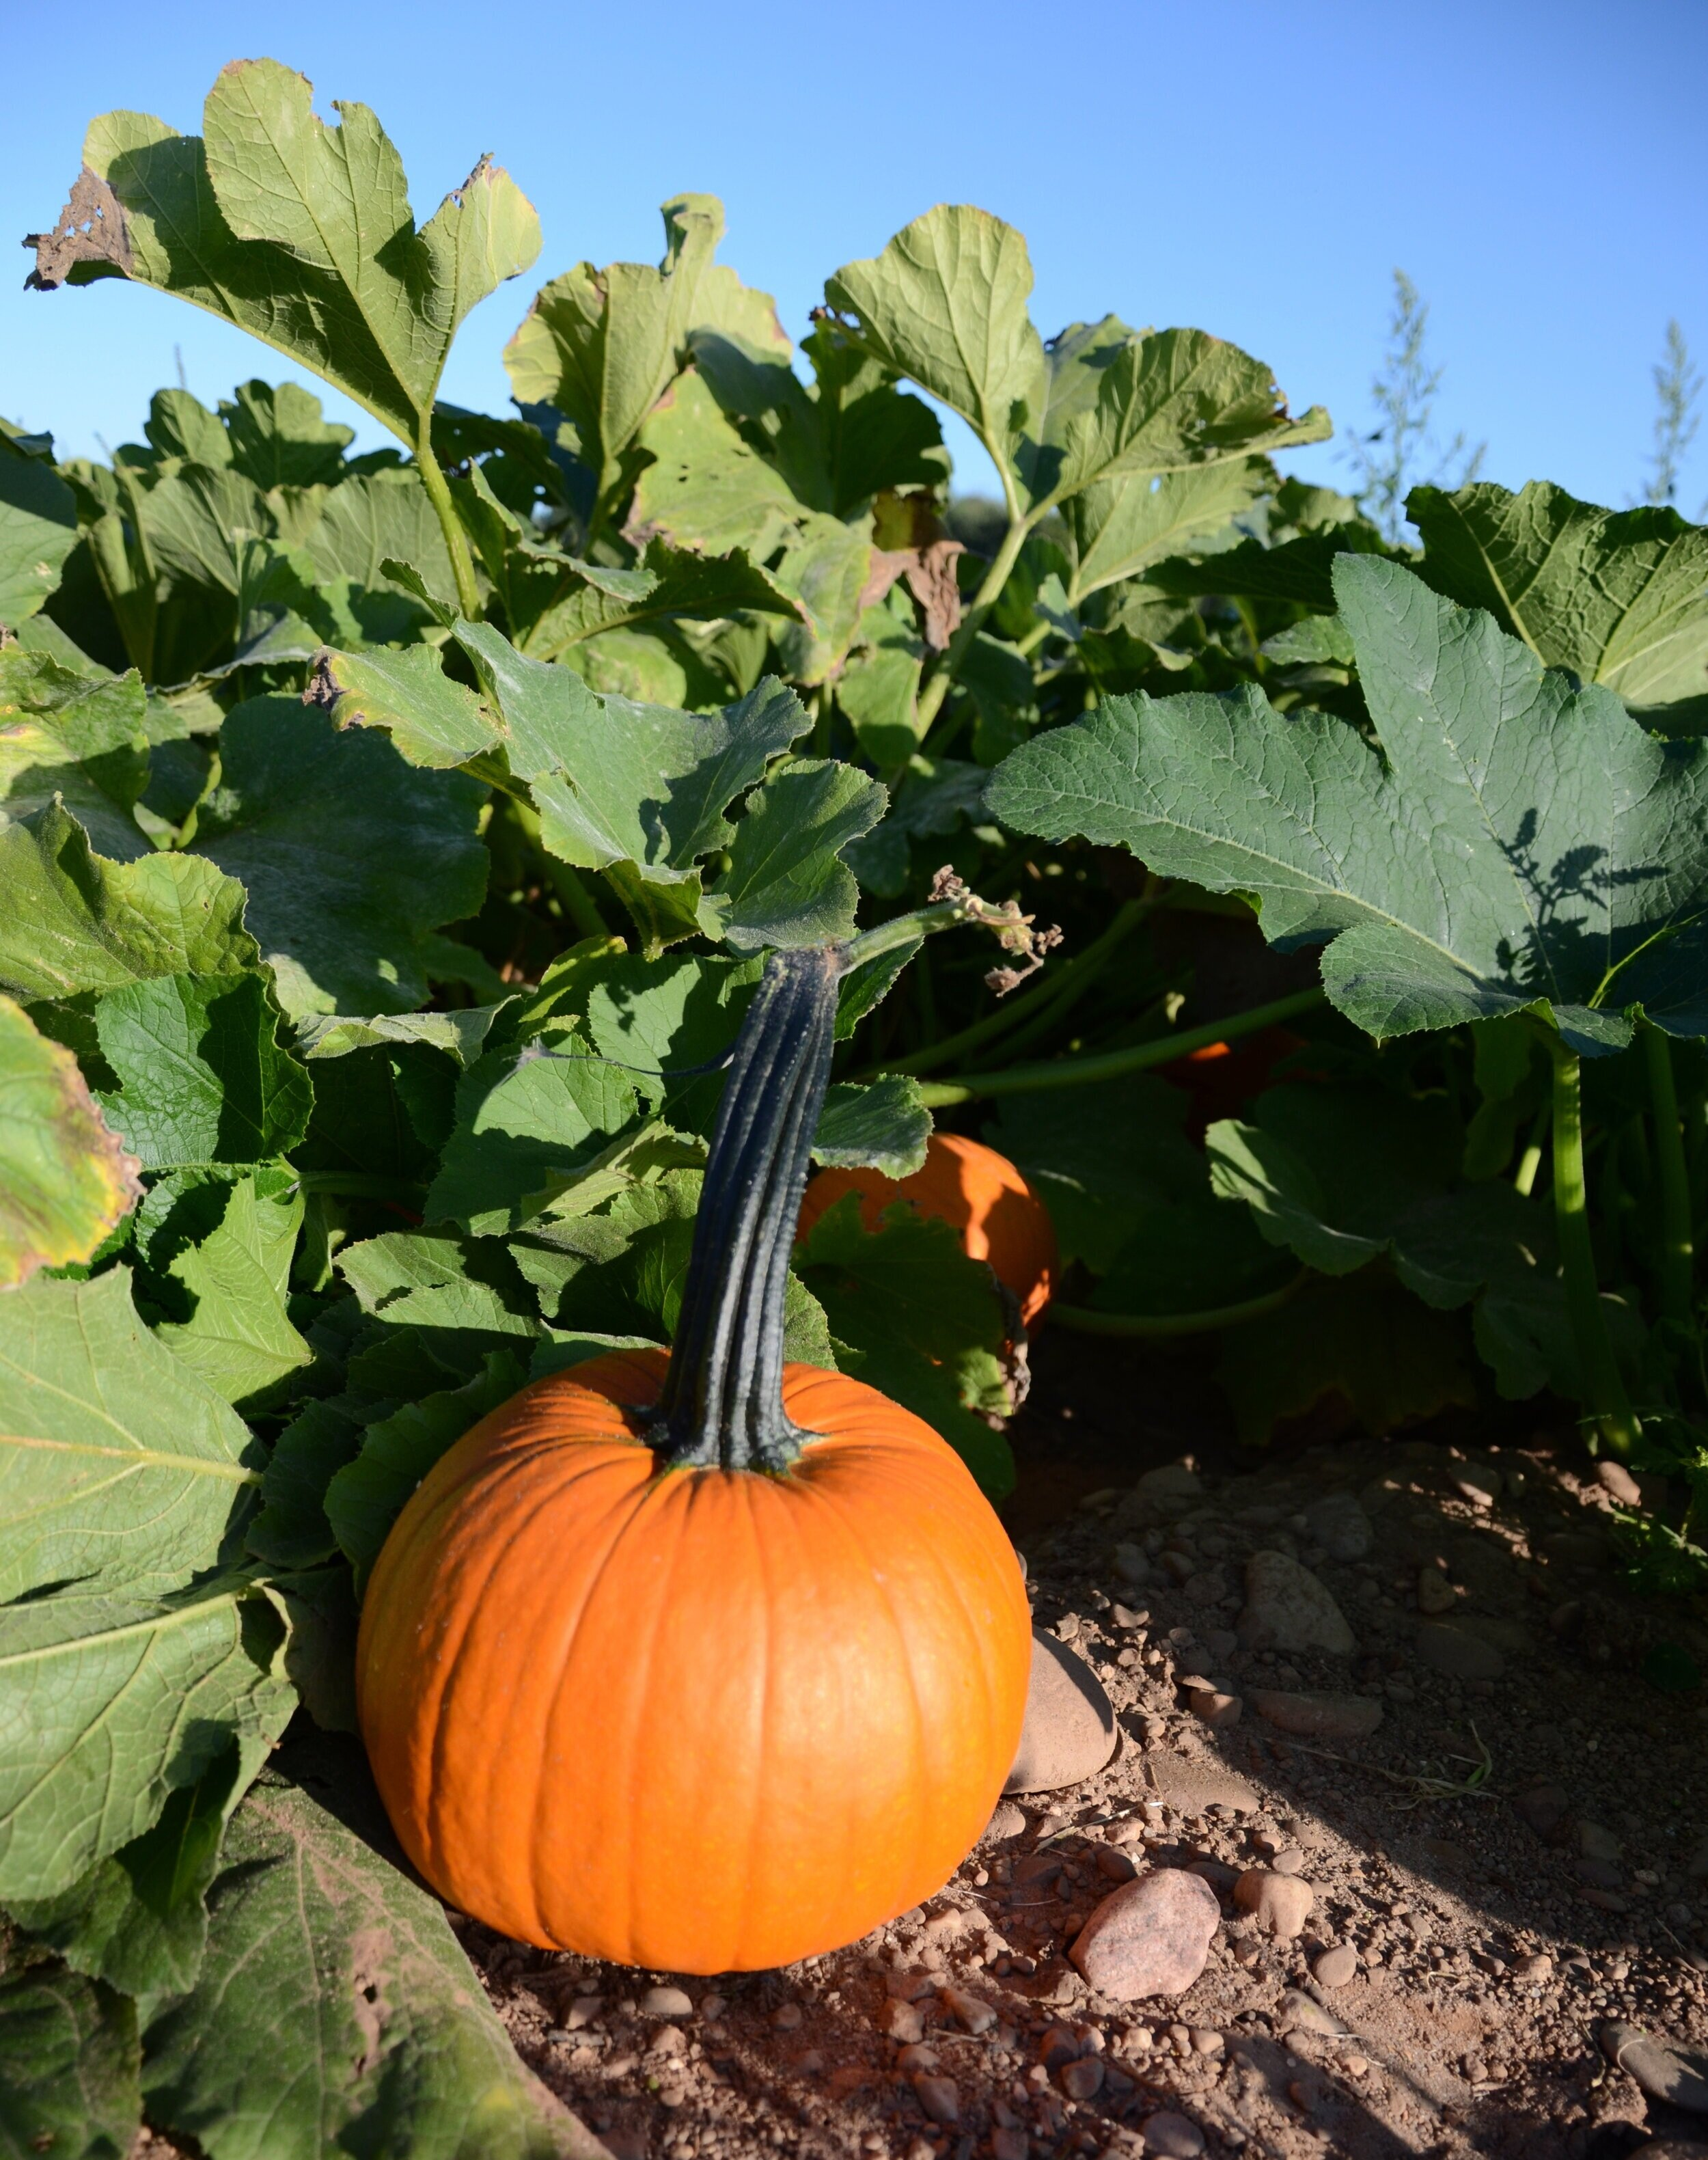 Pick a Pumpkin! - Find your perfect Pumpkin in our Pumpkin Field!